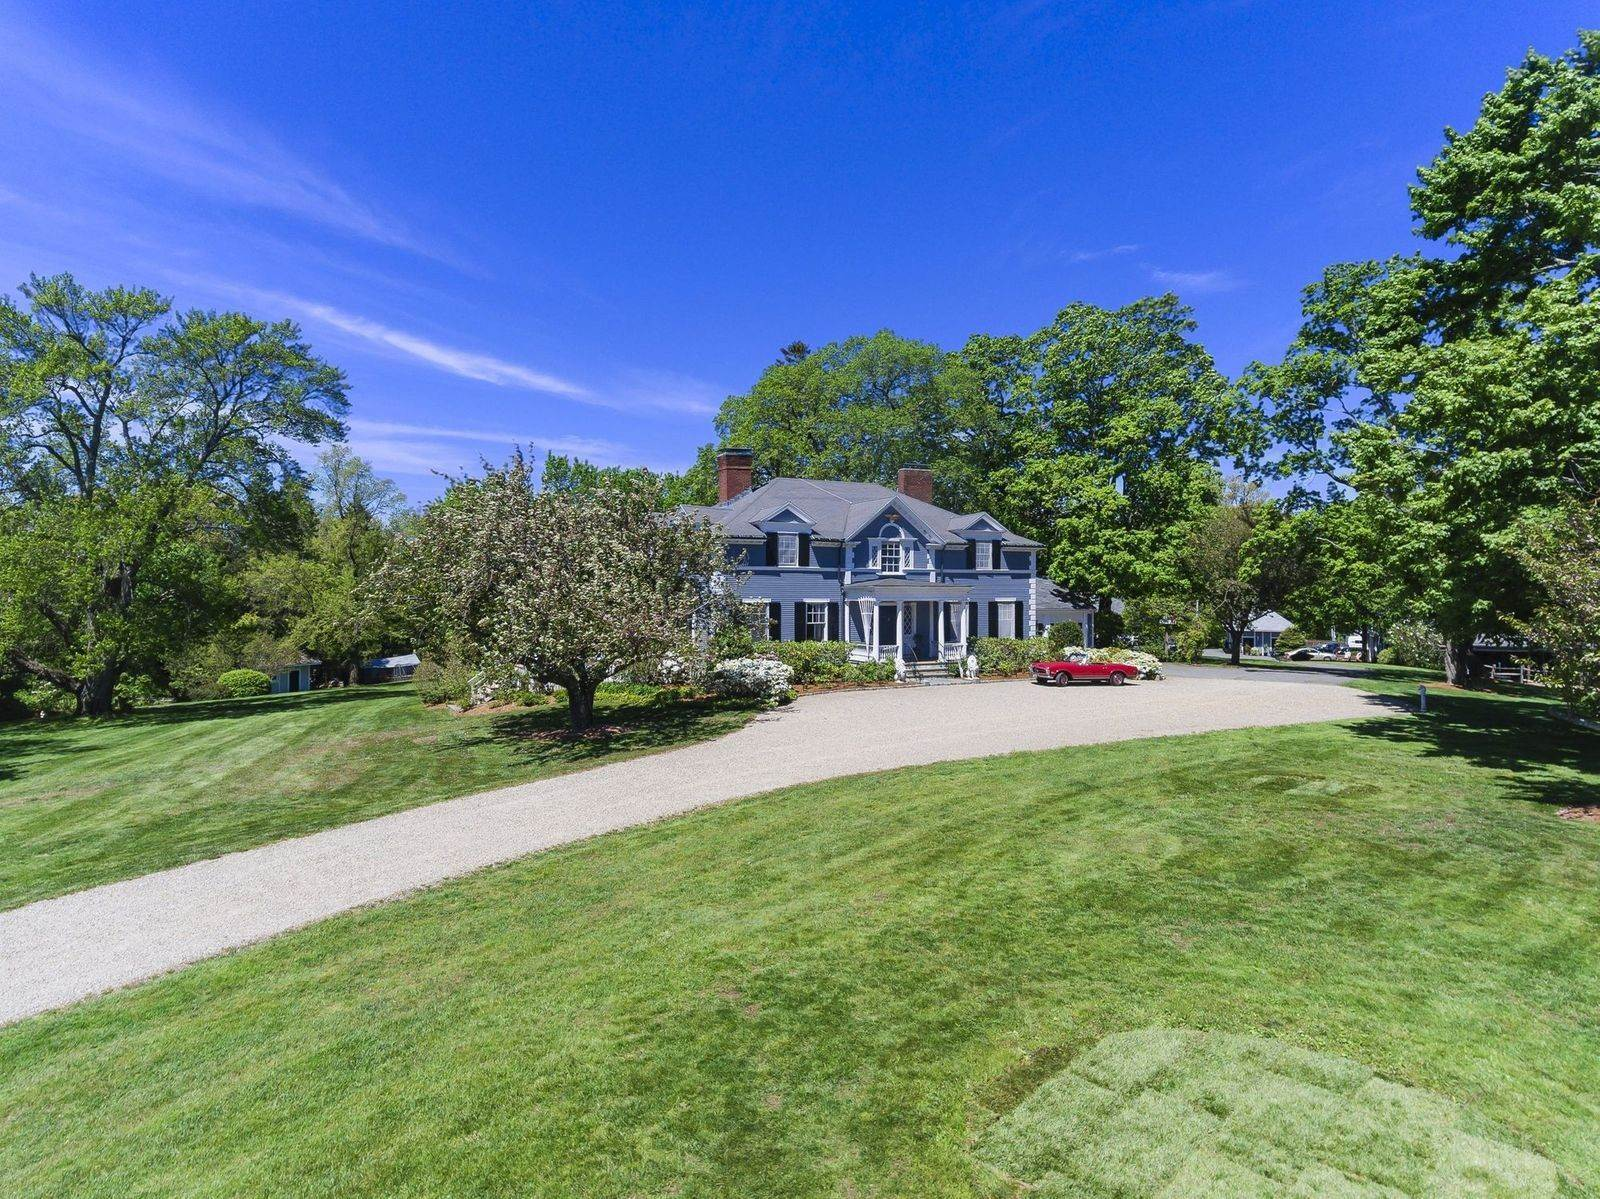 Single Family Home vì Bán tại Sunswick 65 Waldingfield Road Ipswich, Massachusetts,01938 Hoa Kỳ